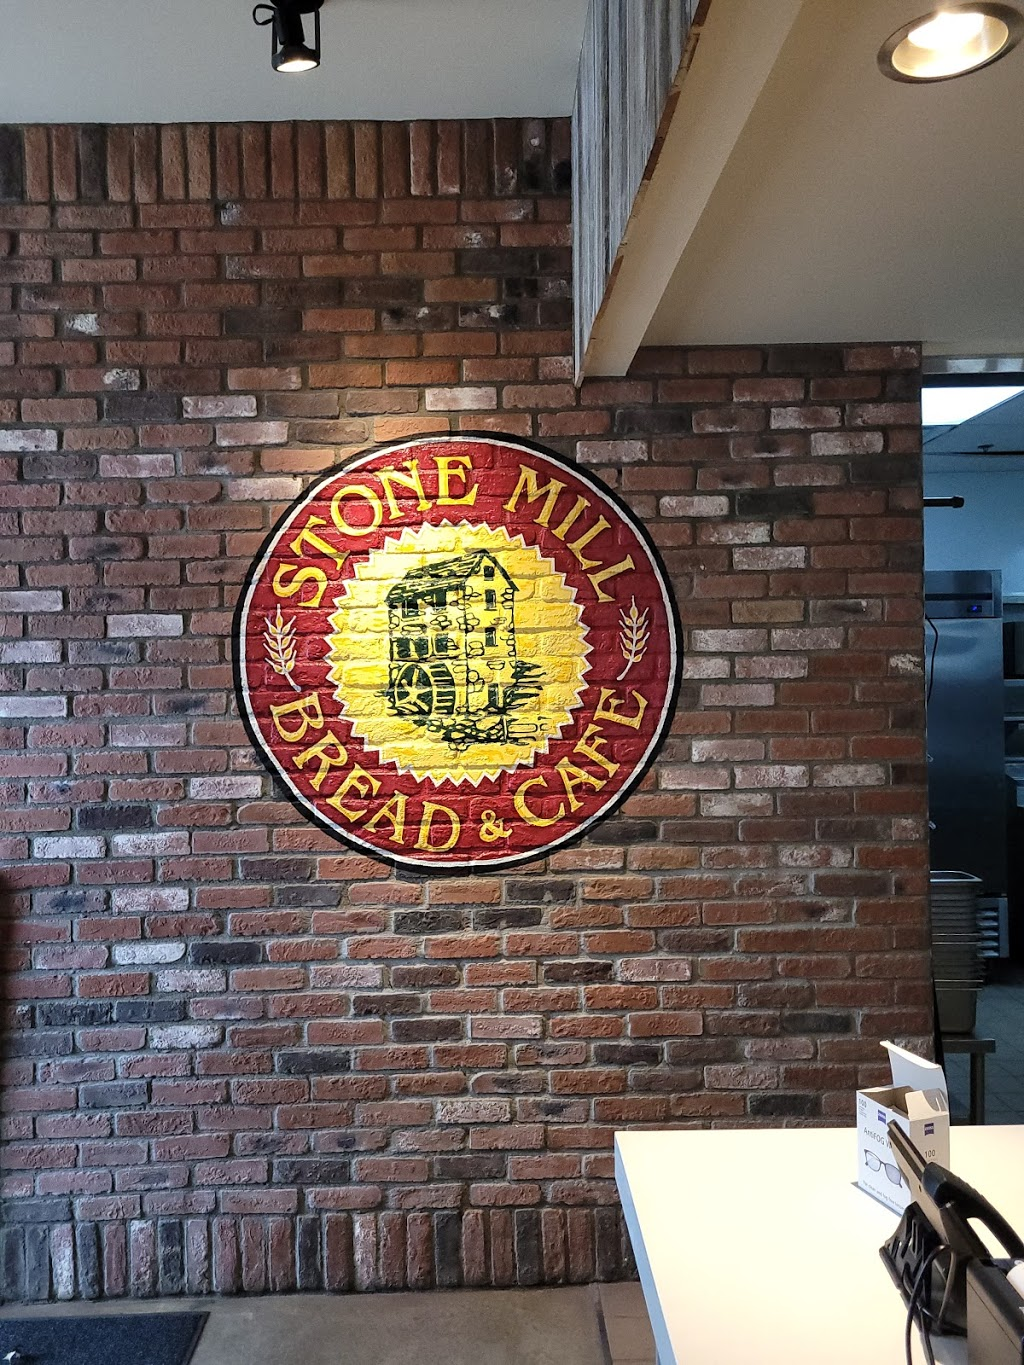 Stone Mill Bread & Cafe - Springdale   bakery   4101 W Sunset Ave, Springdale, AR 72762, USA   4793438116 OR +1 479-343-8116